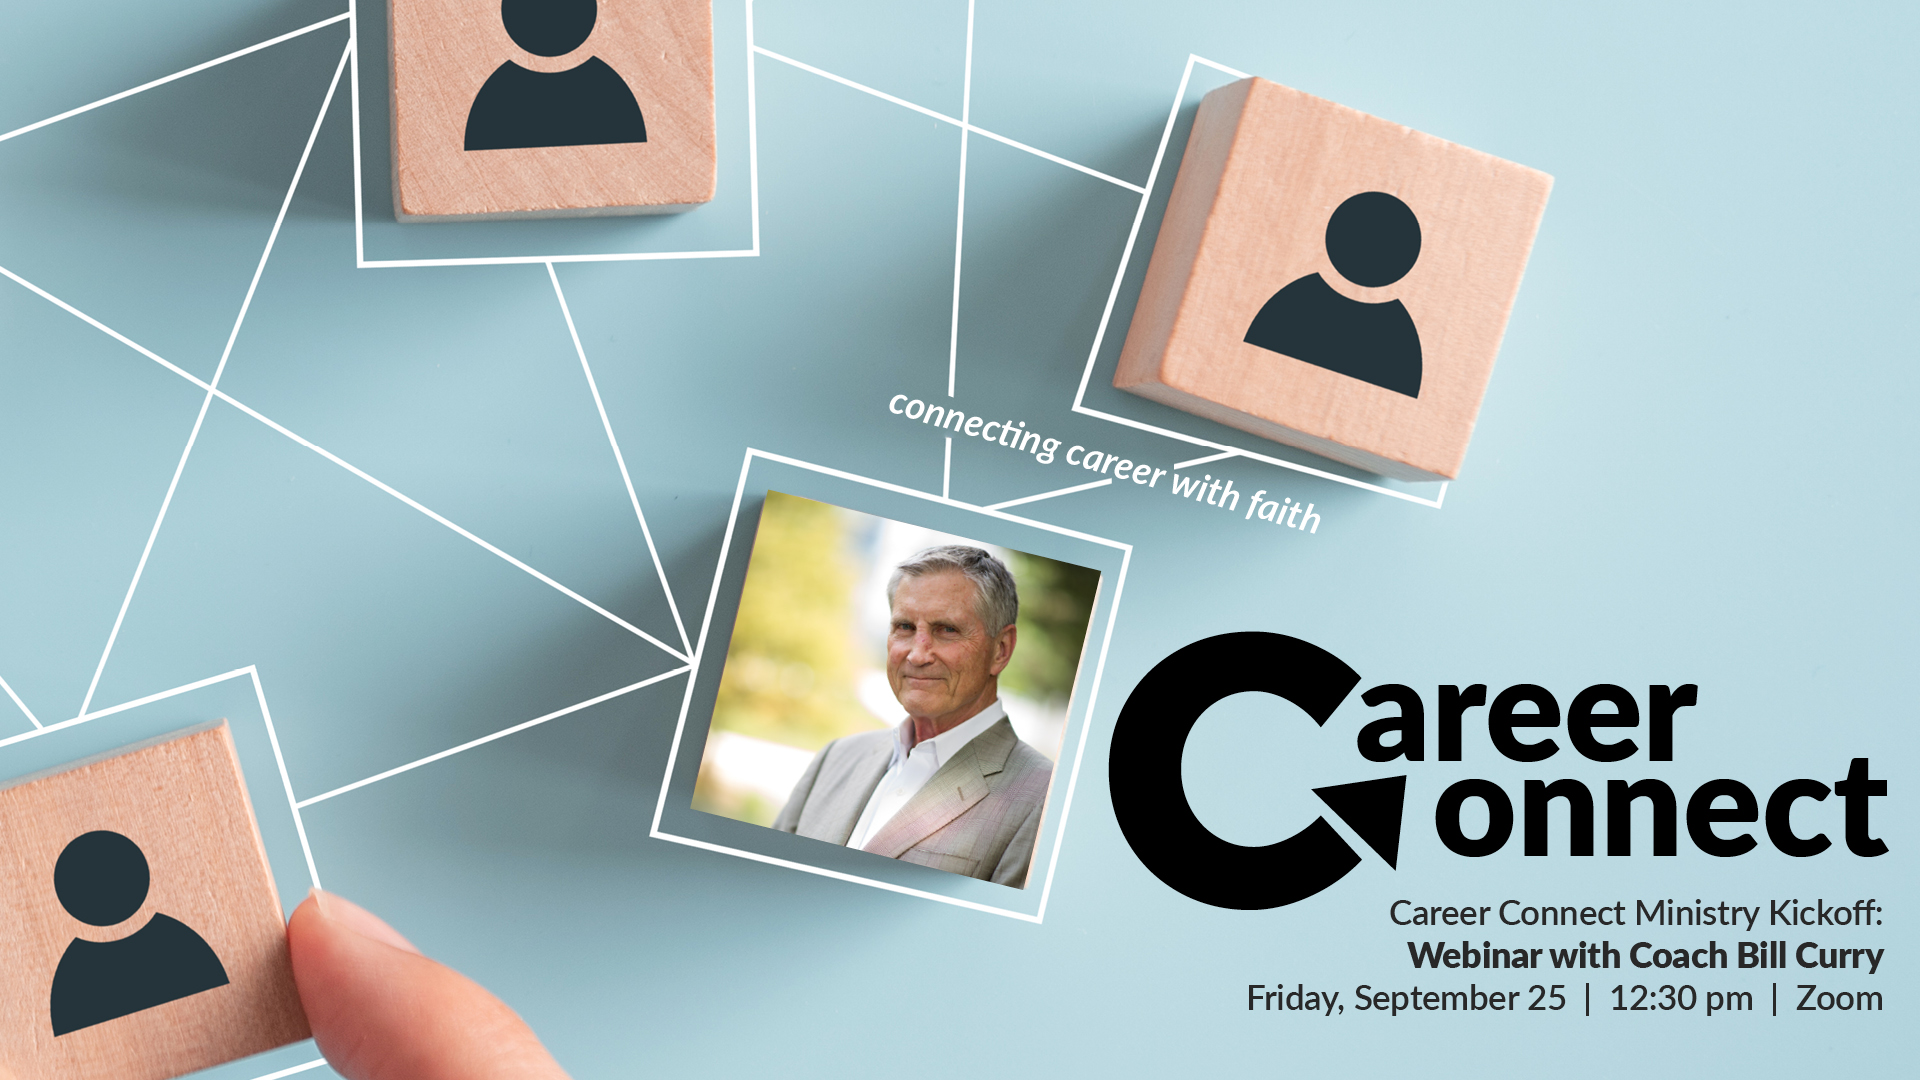 Career Connect with Bill Curry